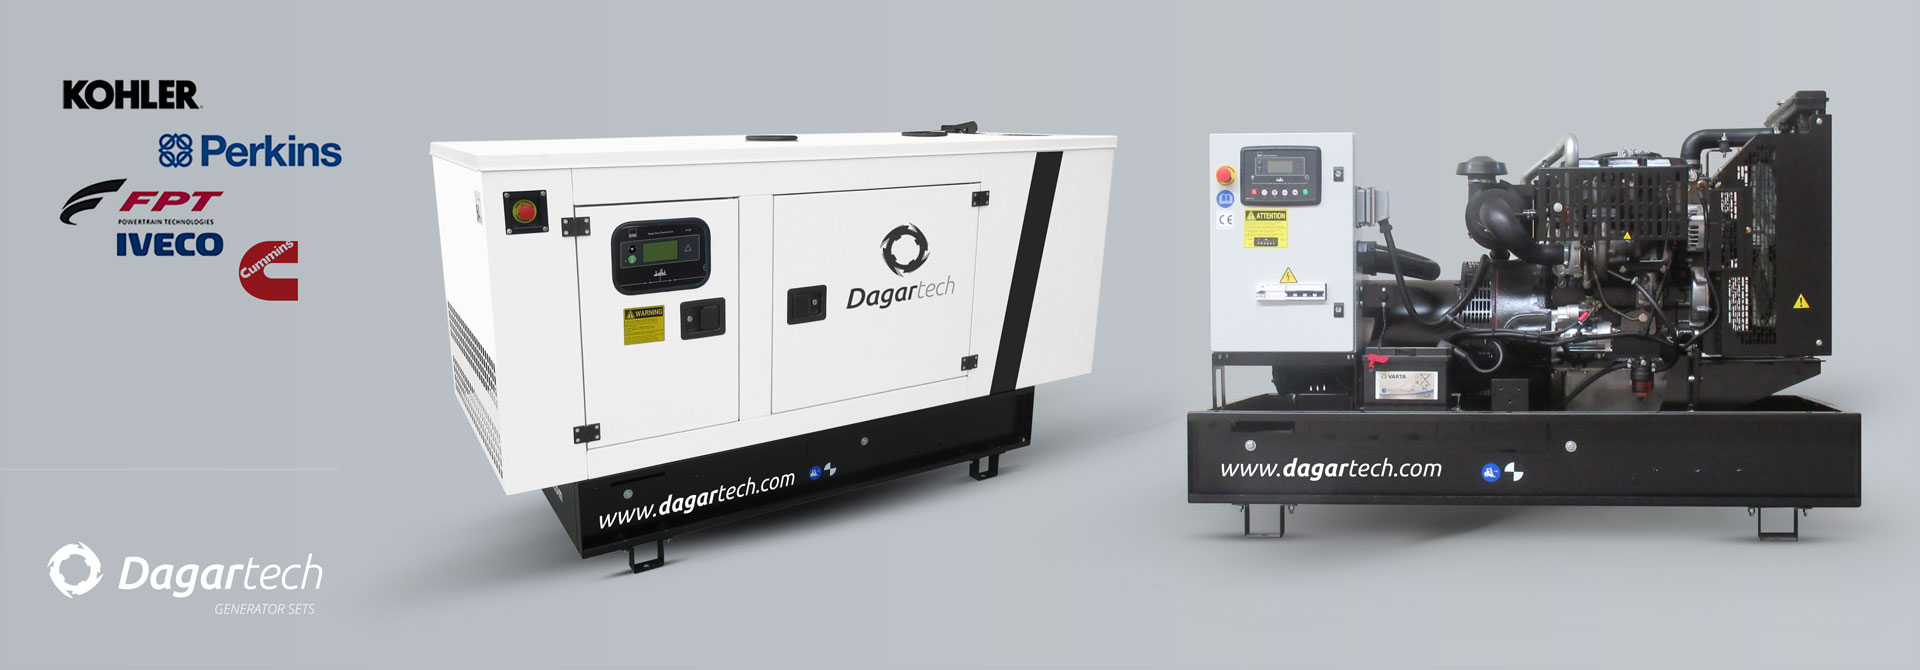 Generator Sets for Use In Various Public Spaces | Dagartech